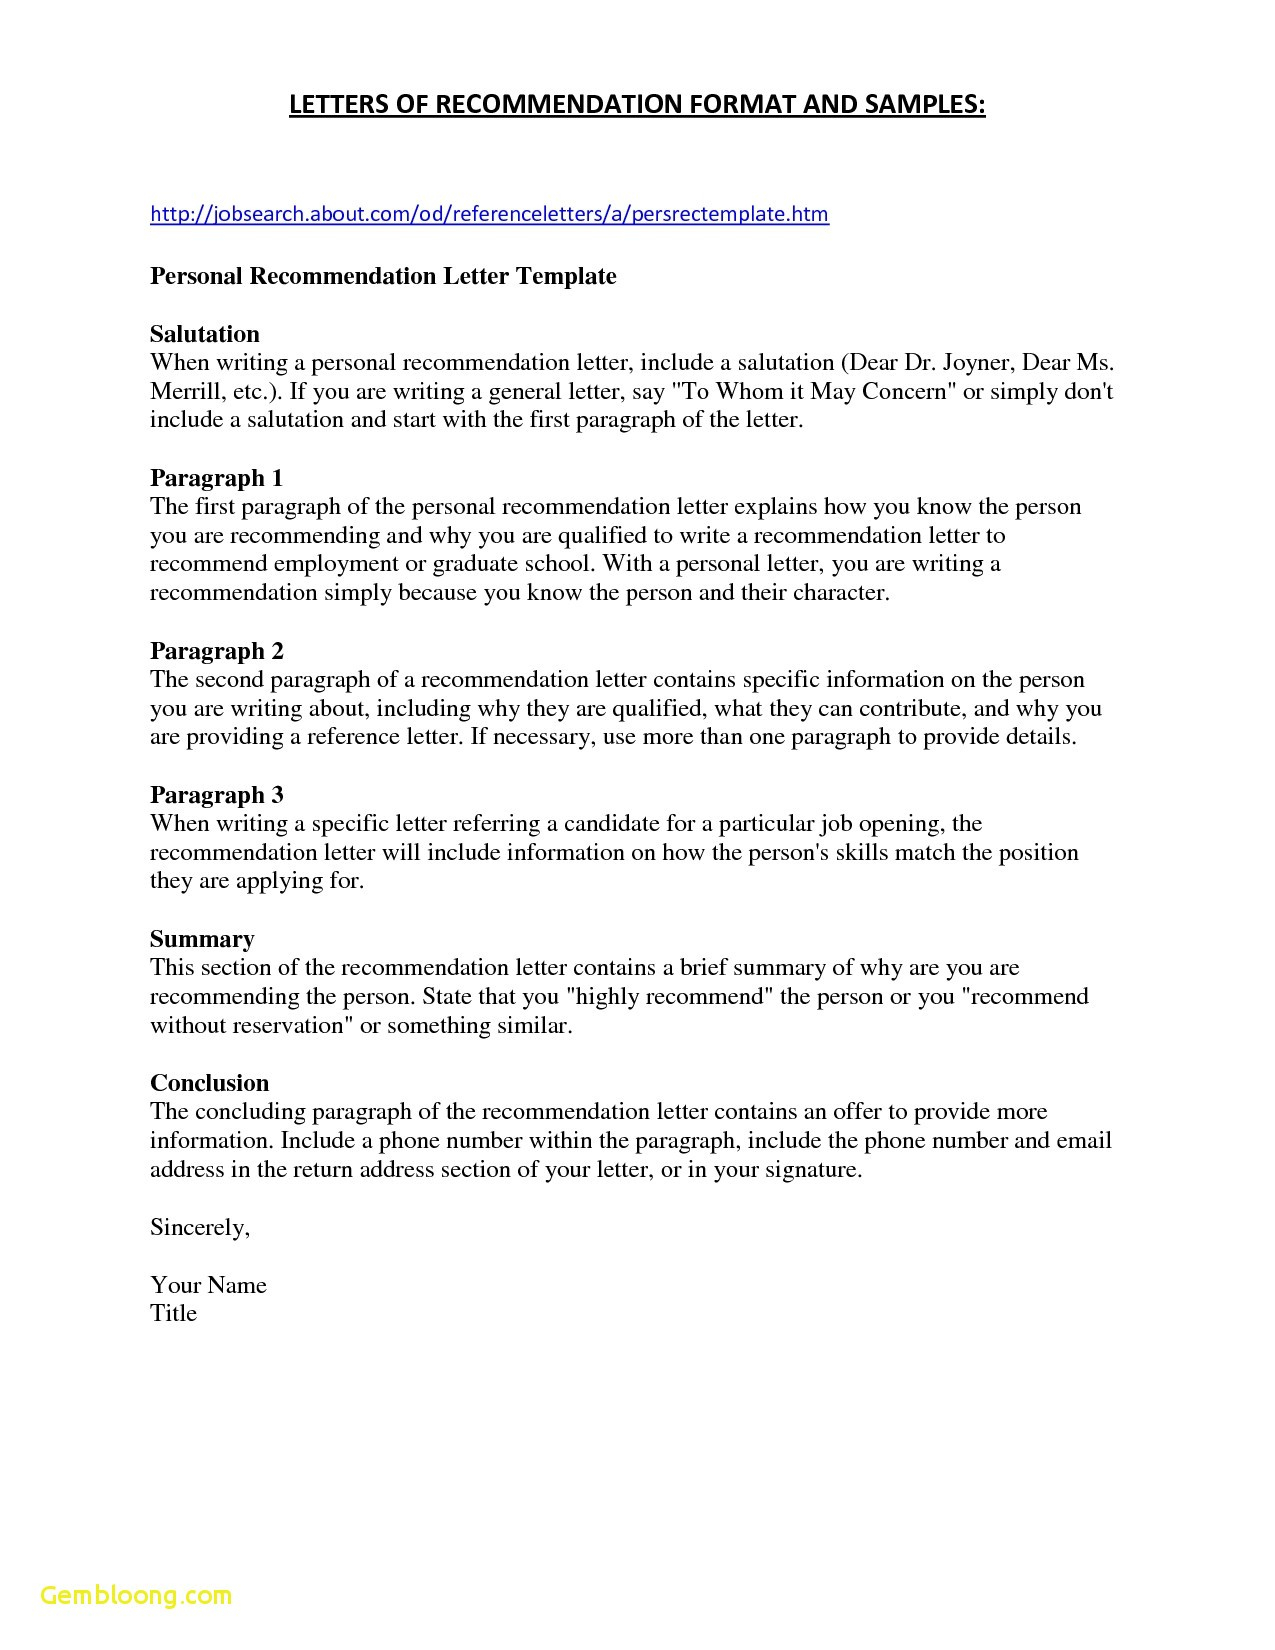 Letter Of Recommendation Template Pdf - Letter Re Mendation Template for College Admission New College